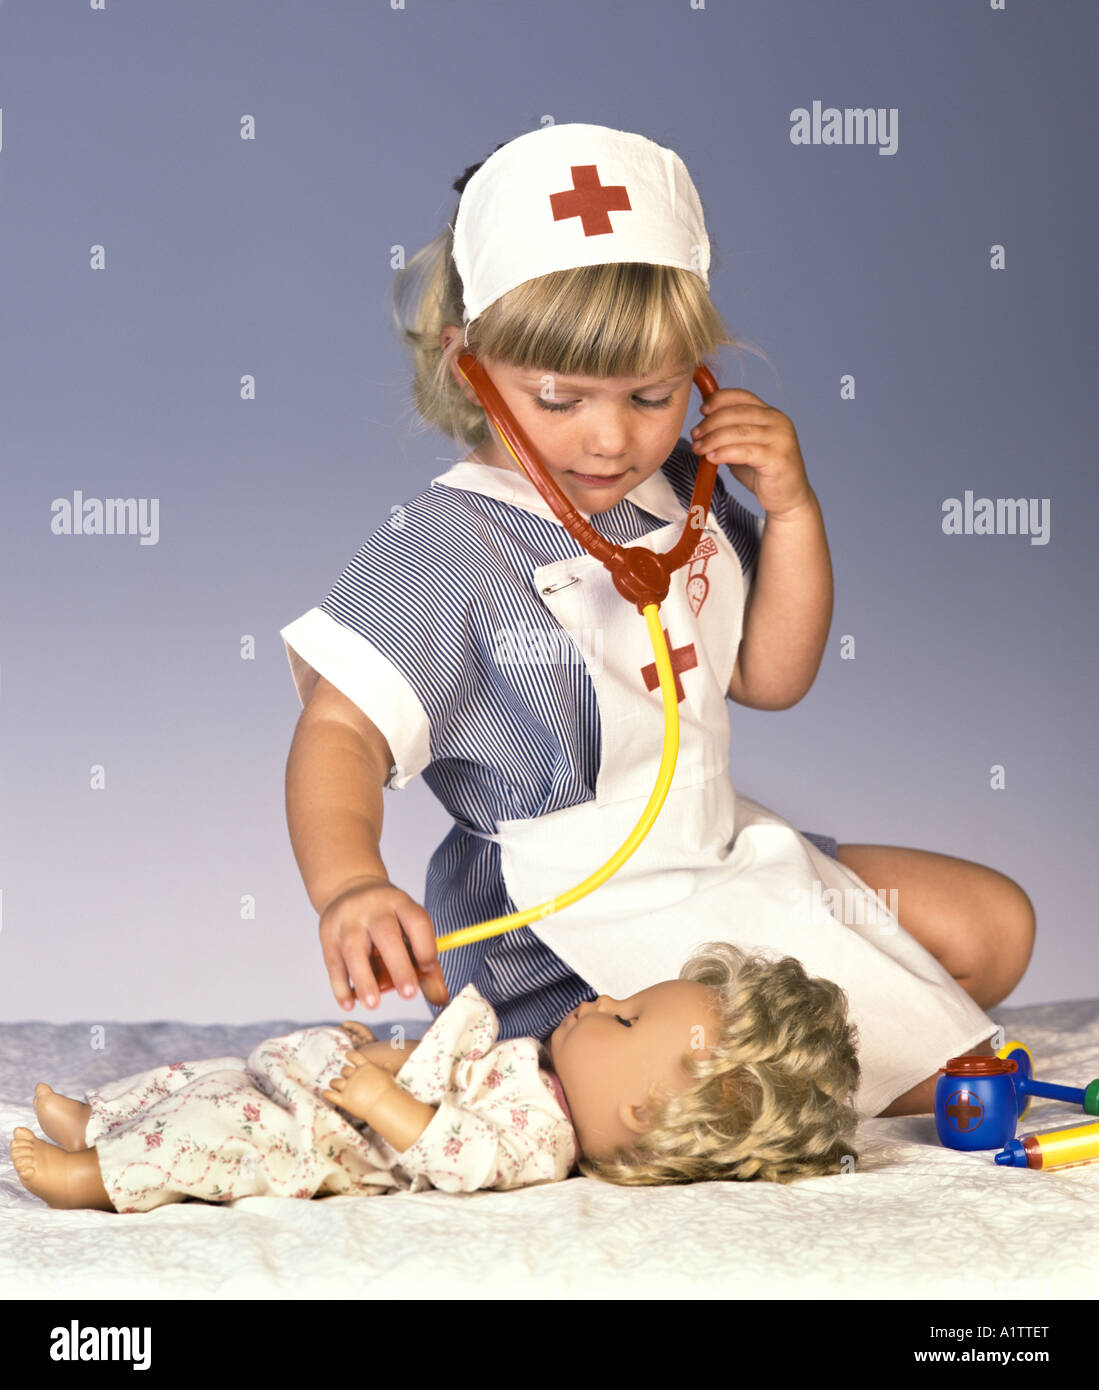 7bd2e2be30f87 A young girl in a nurses costume plays with her doll and a stethoscope